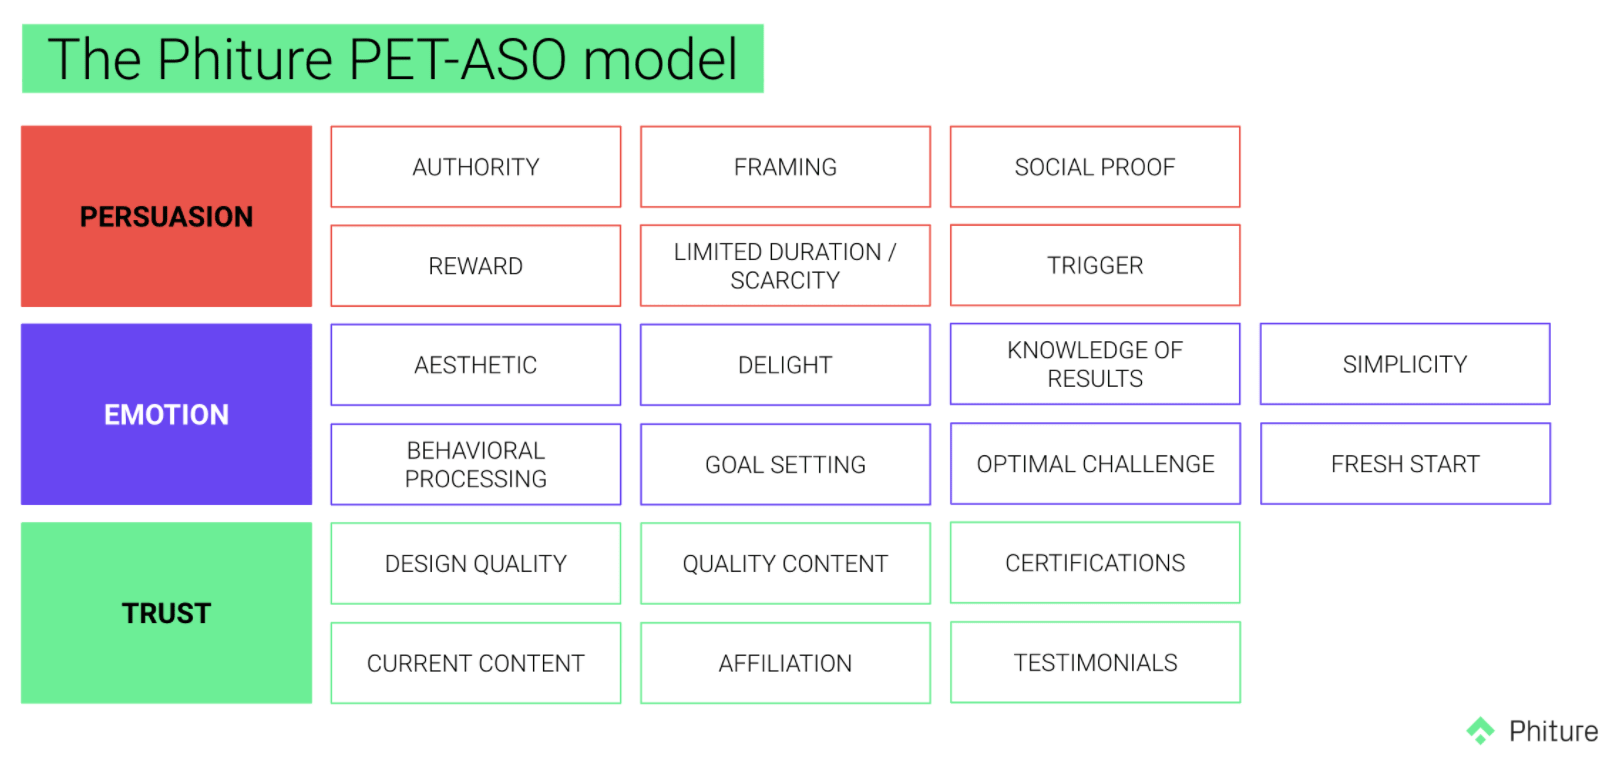 The Phiture PET-ASO Model